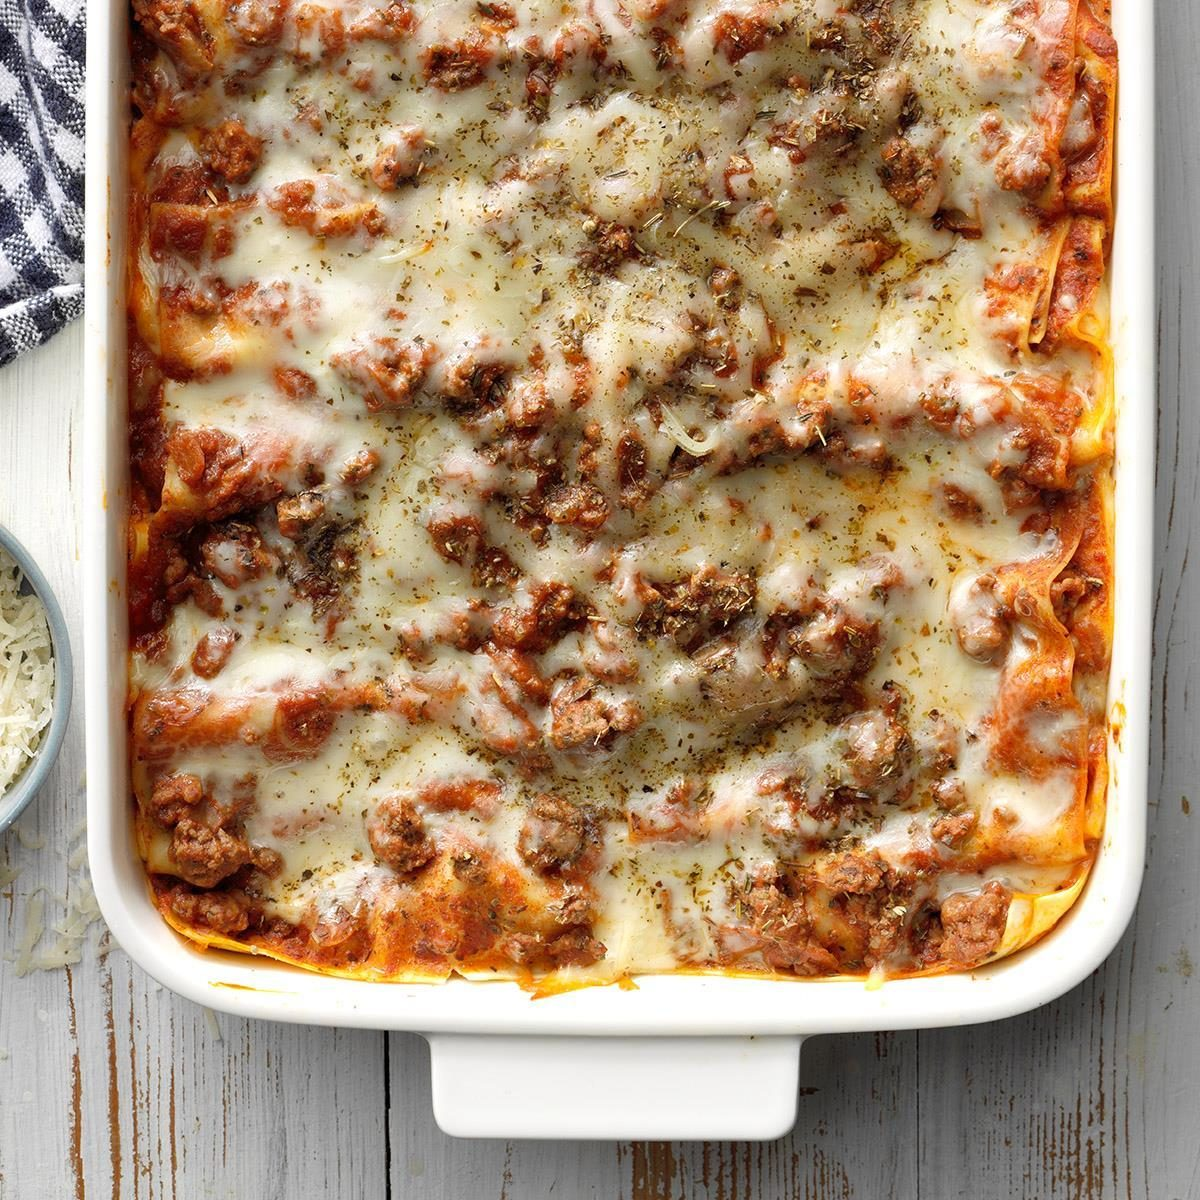 October 21: Perfect Four-Cheese Lasagna